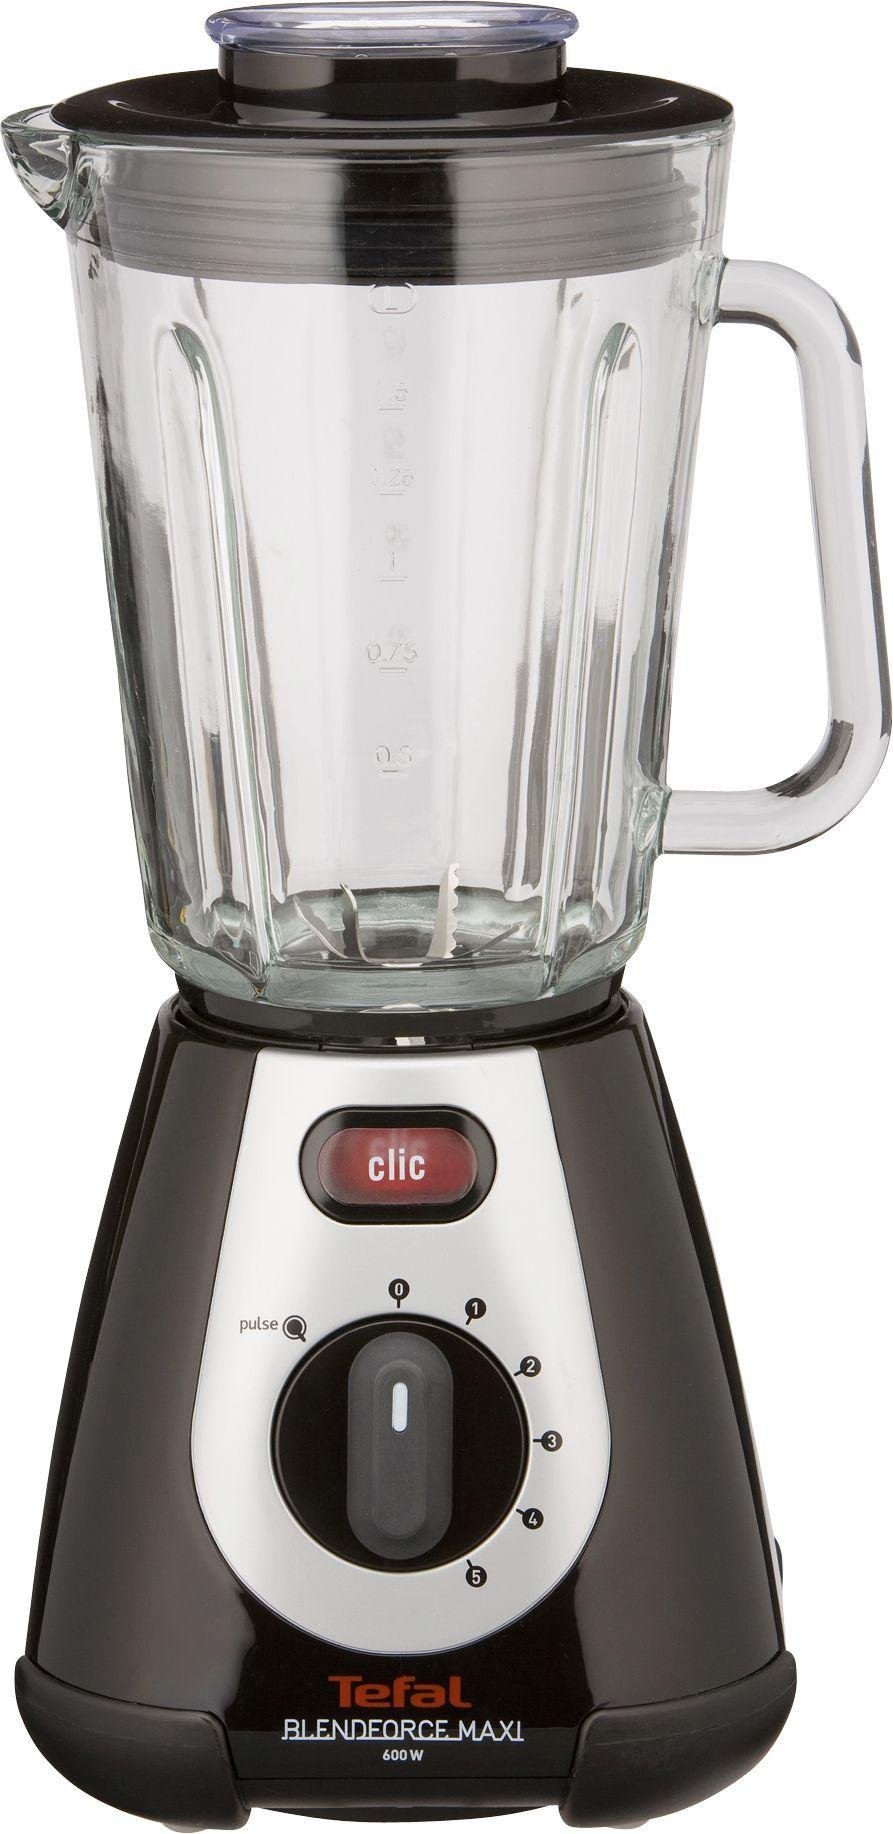 Tefal - BL233865 Blendforce Maxi Glass Blender - Black